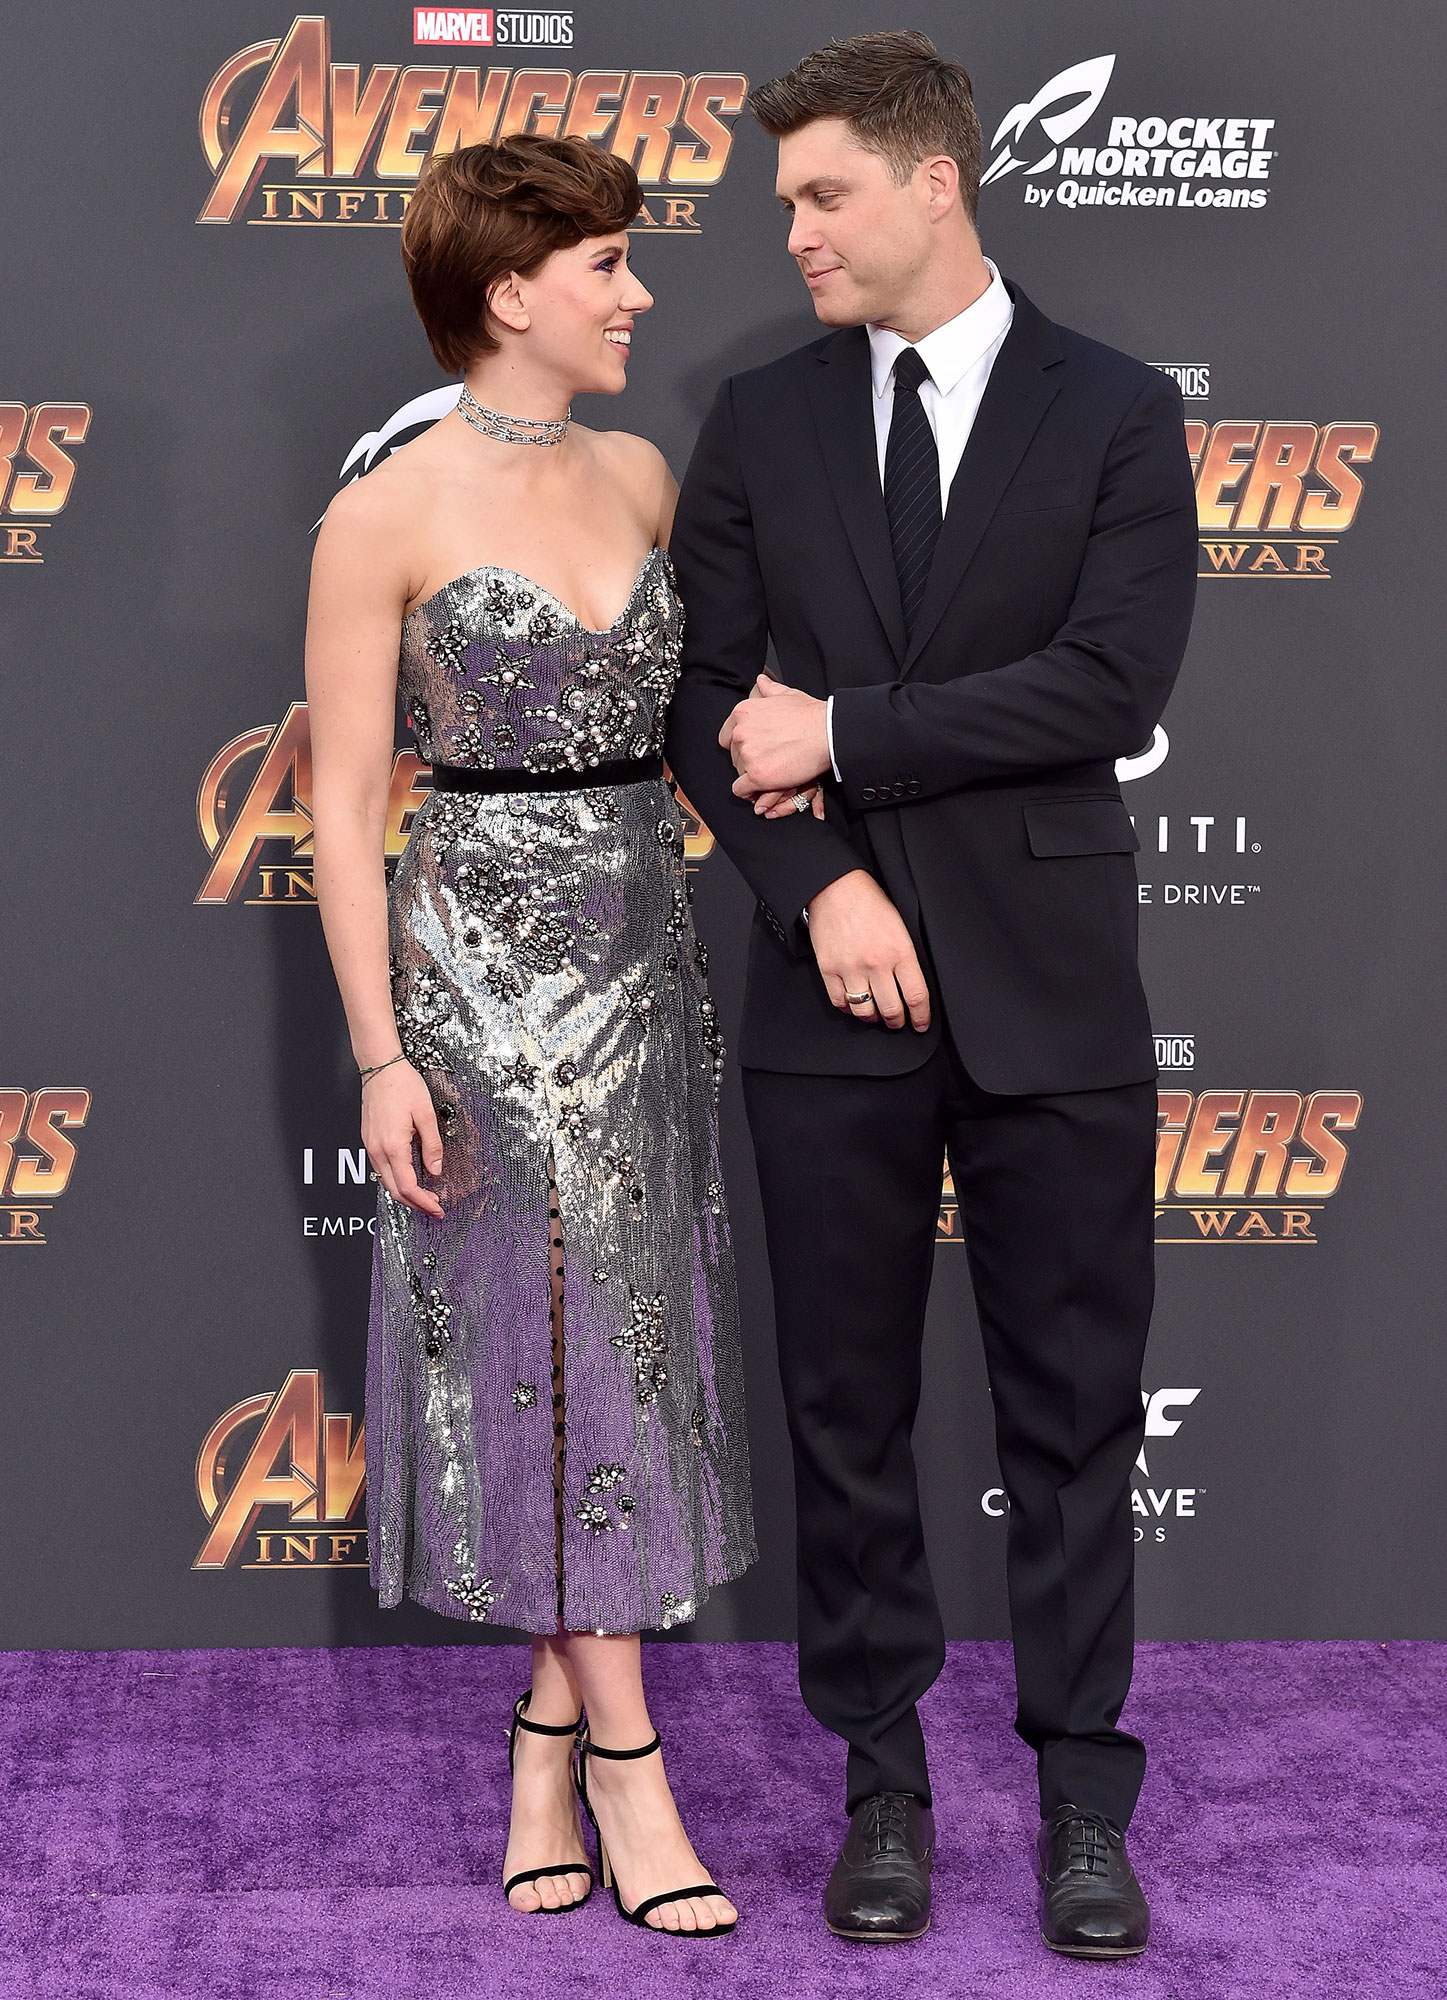 """Scarlett Johansson and Colin Jost Relationship Timeline Avengers Infinity War - Hours after telling Ellen DeGeneres that she is """"a Colin fan,"""" the actress brought her boyfriend to the Avengers: Infinity War premiere. """"Their eyes lit up when they looked at each other [on the red carpet],"""" an eyewitness told Us ."""